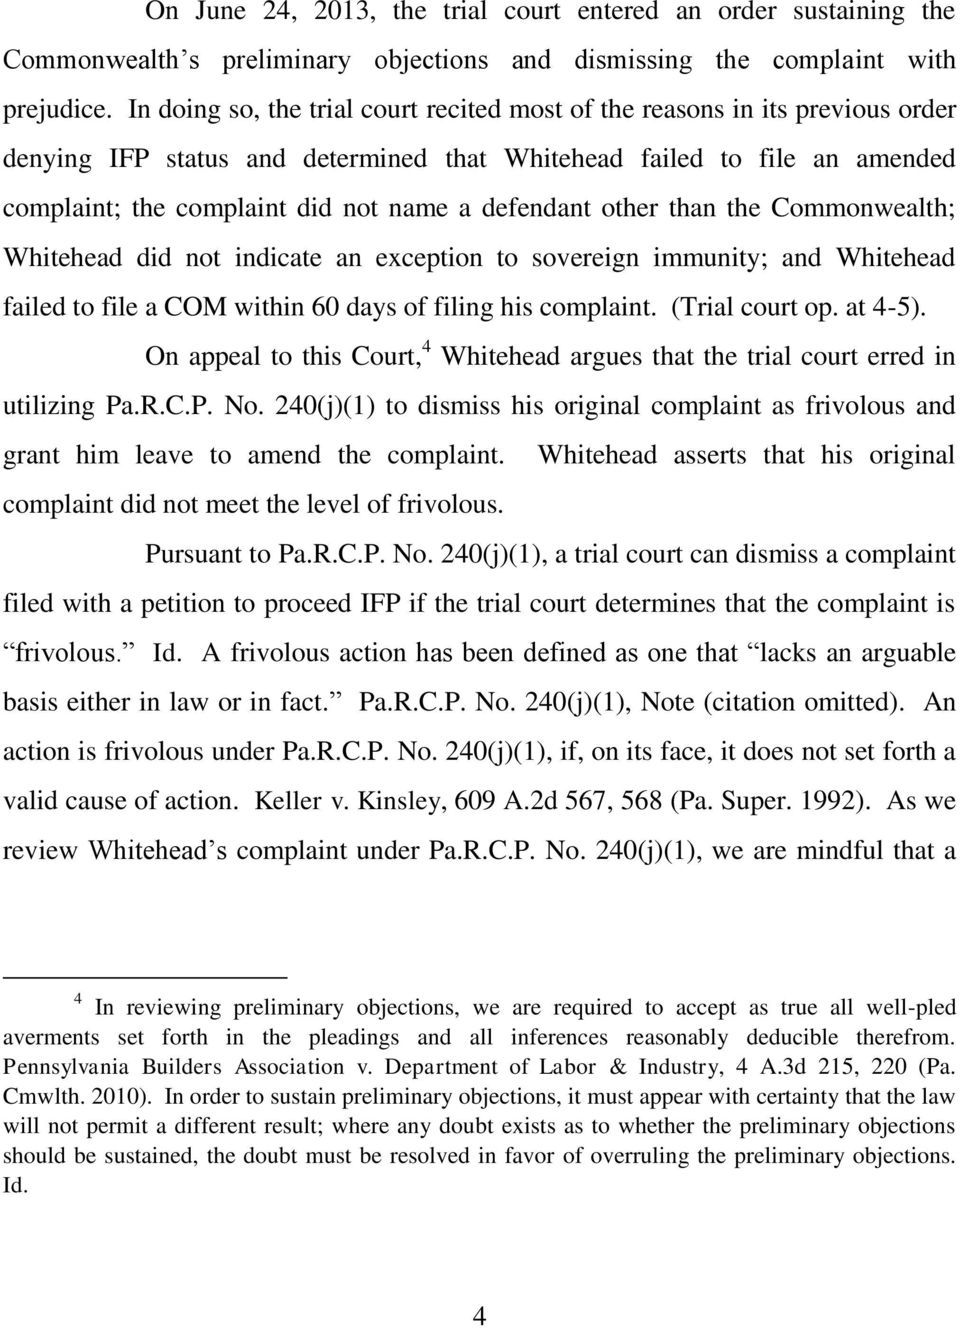 defendant other than the Commonwealth; Whitehead did not indicate an exception to sovereign immunity; and Whitehead failed to file a COM within 60 days of filing his complaint. (Trial court op.